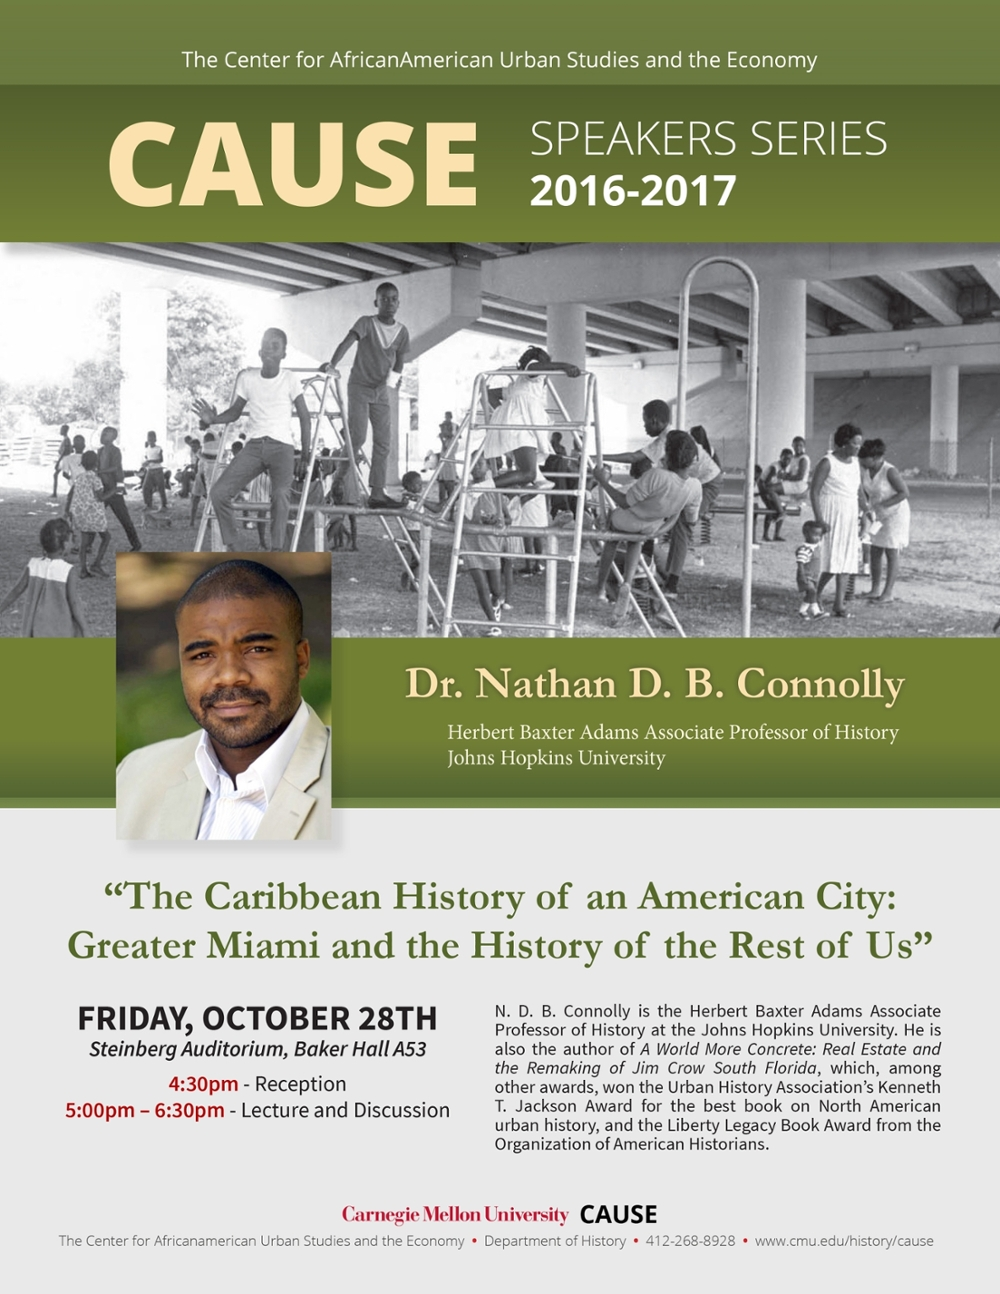 Nathan Connolly - Center for Africanamerican Urban Studies